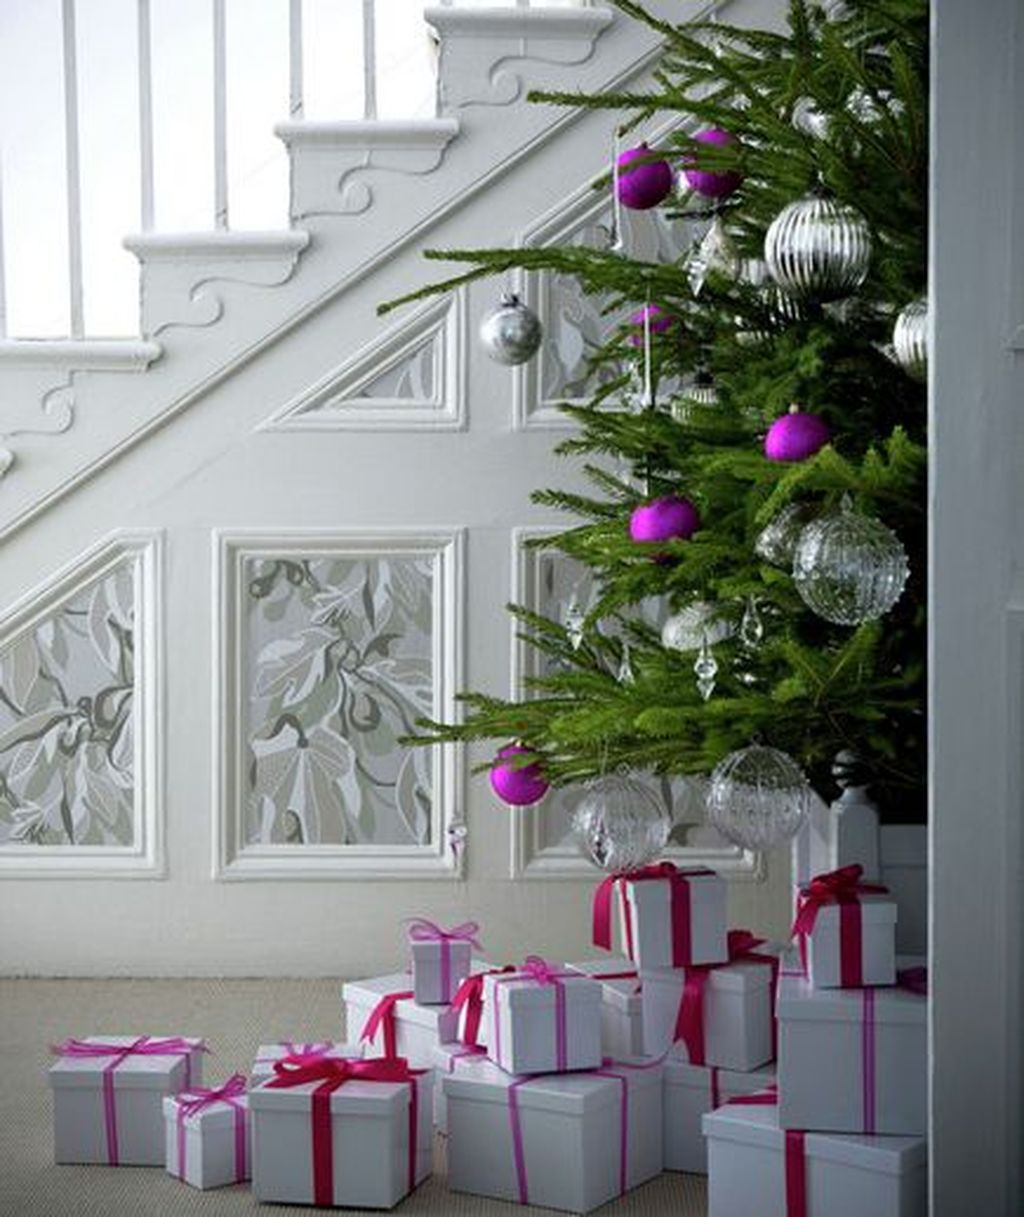 Charming Winter Staircase Design Ideas With Banister Ornaments To Try Asap 23